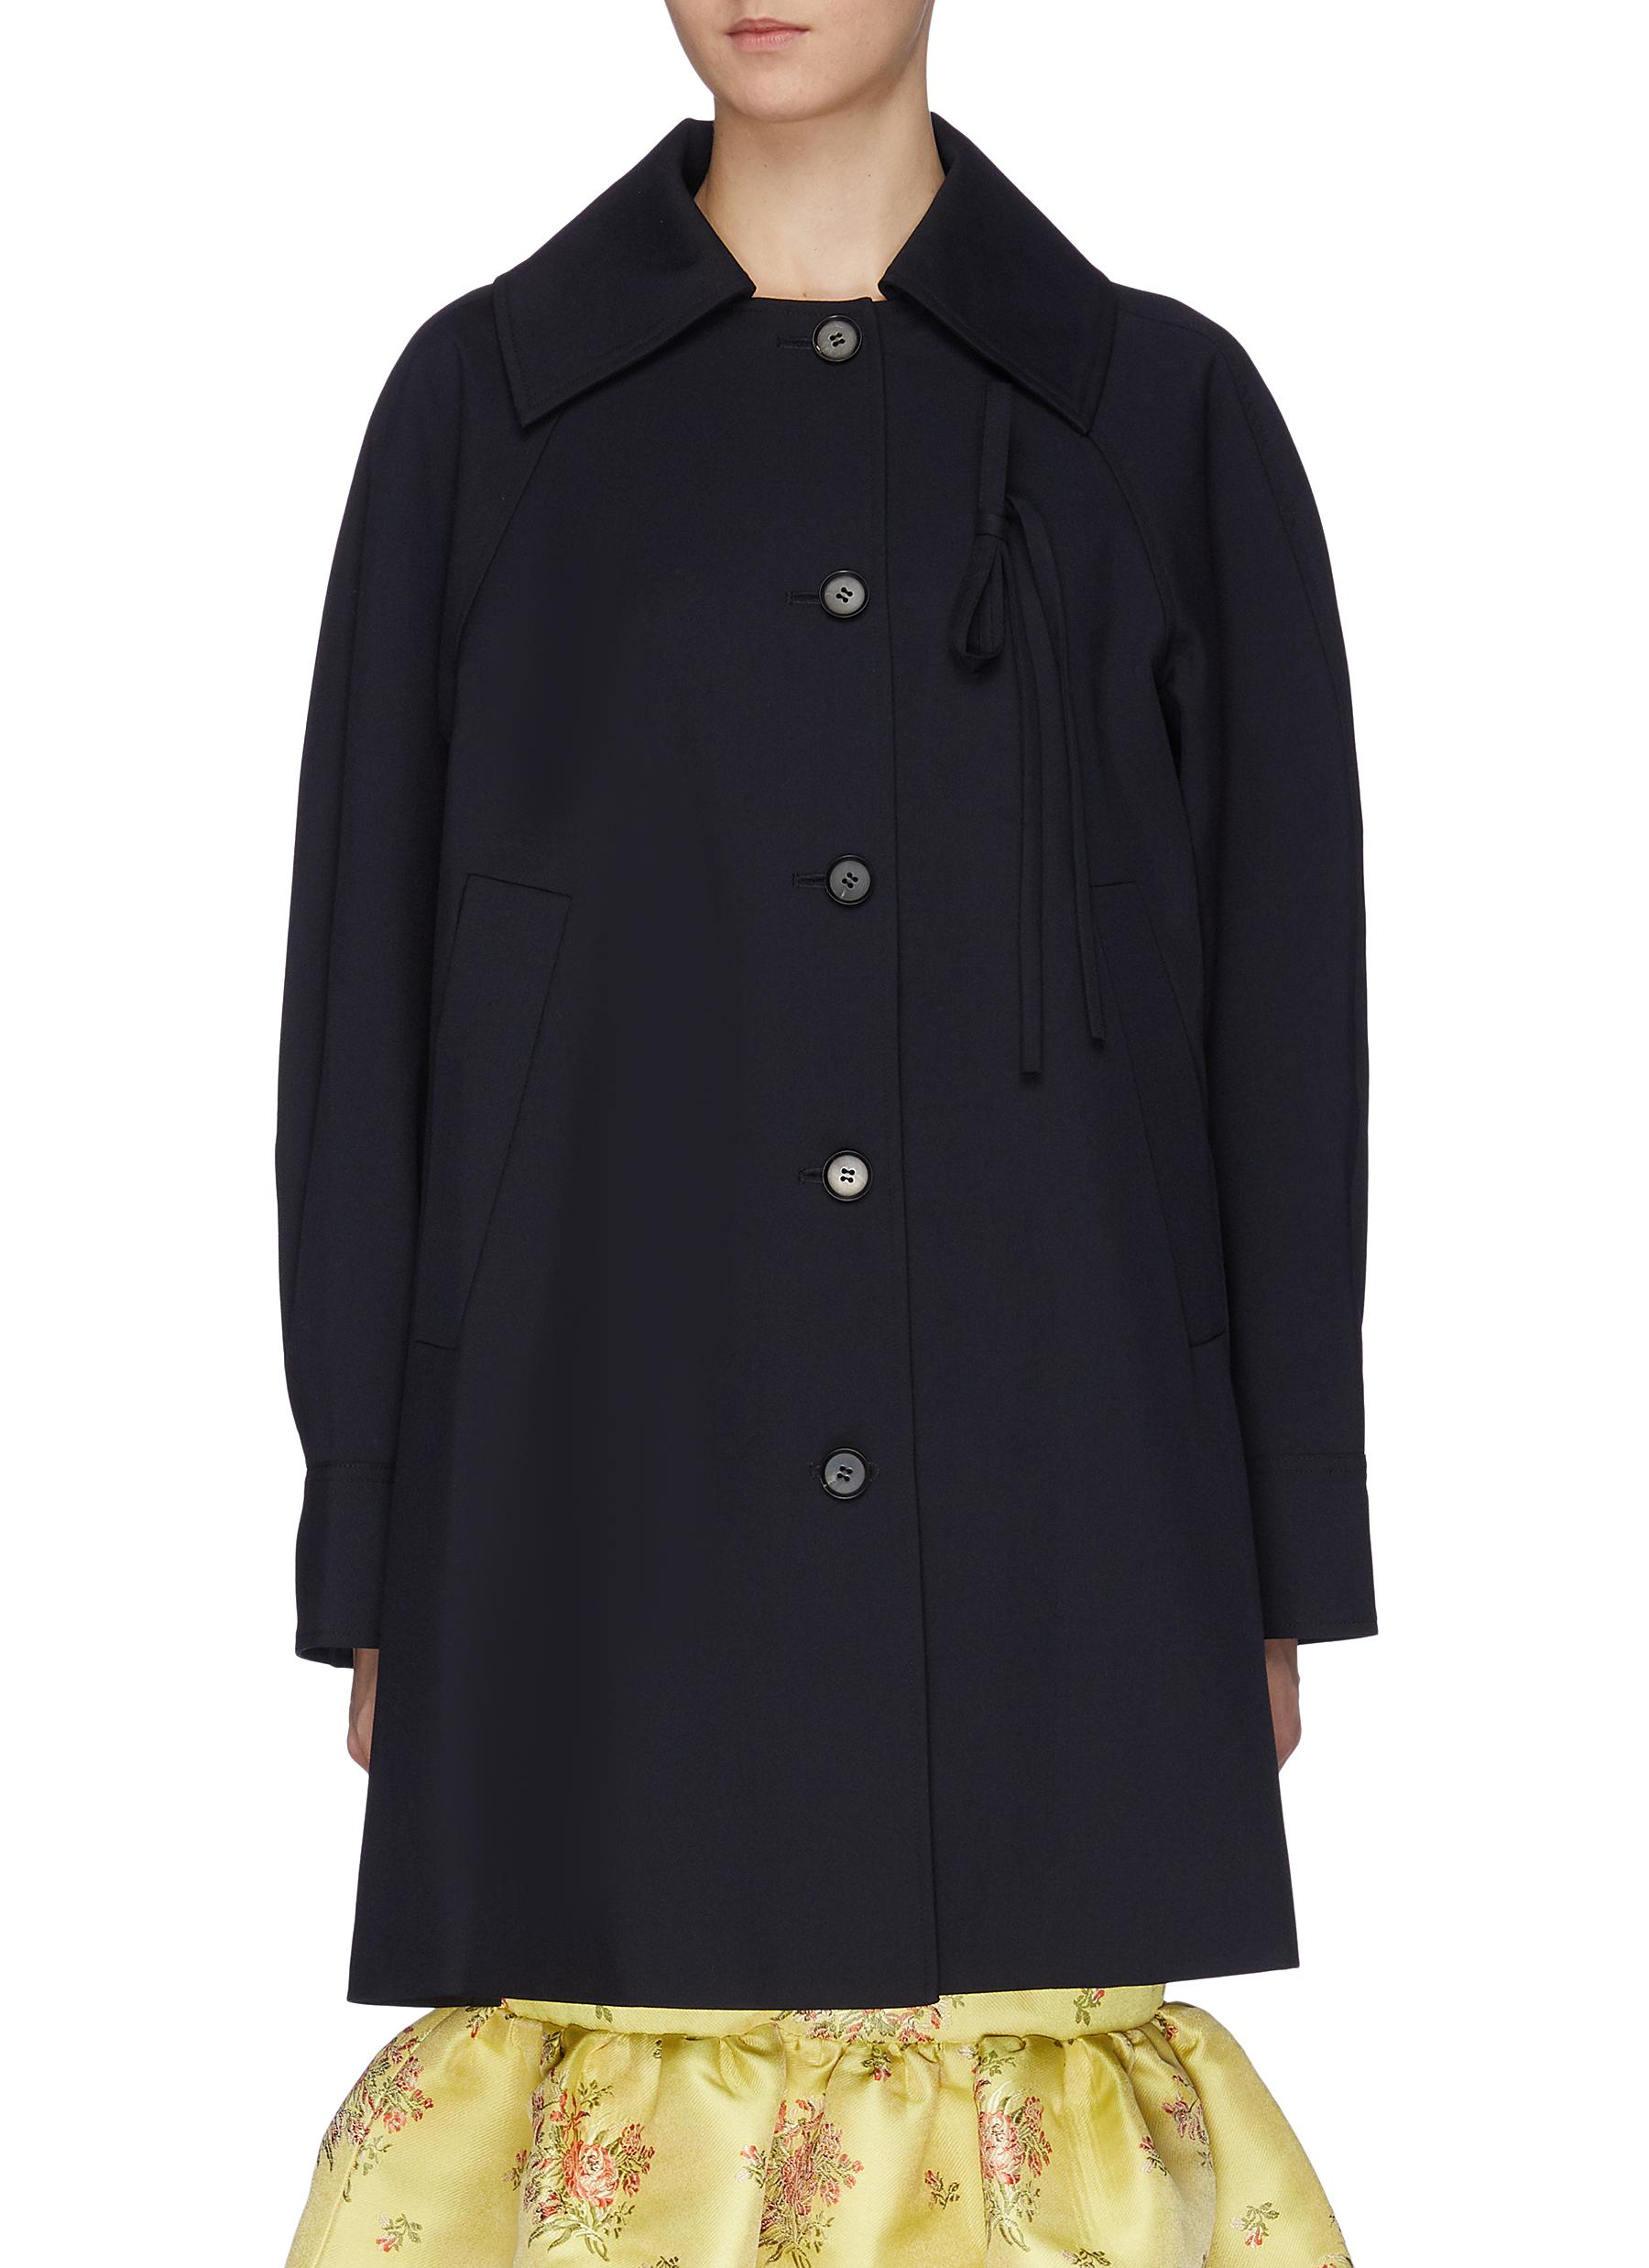 String tie pleated sleeve wool coat by Ming Ma